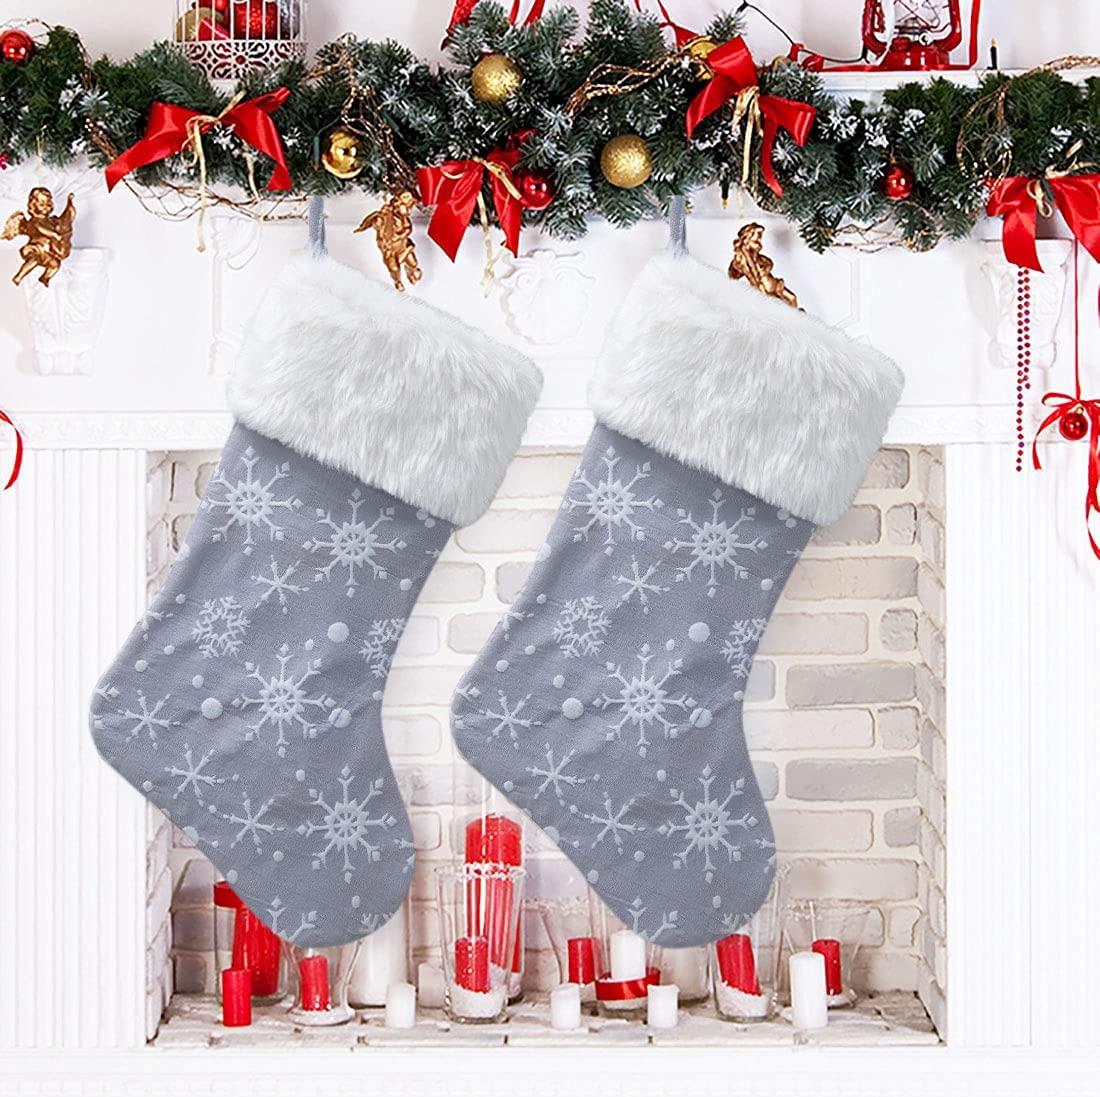 IOORD 2 Pack 40% OFF Cheap Sale Large Plush Lovely Popular popular Stockings Christmas S Embroidery